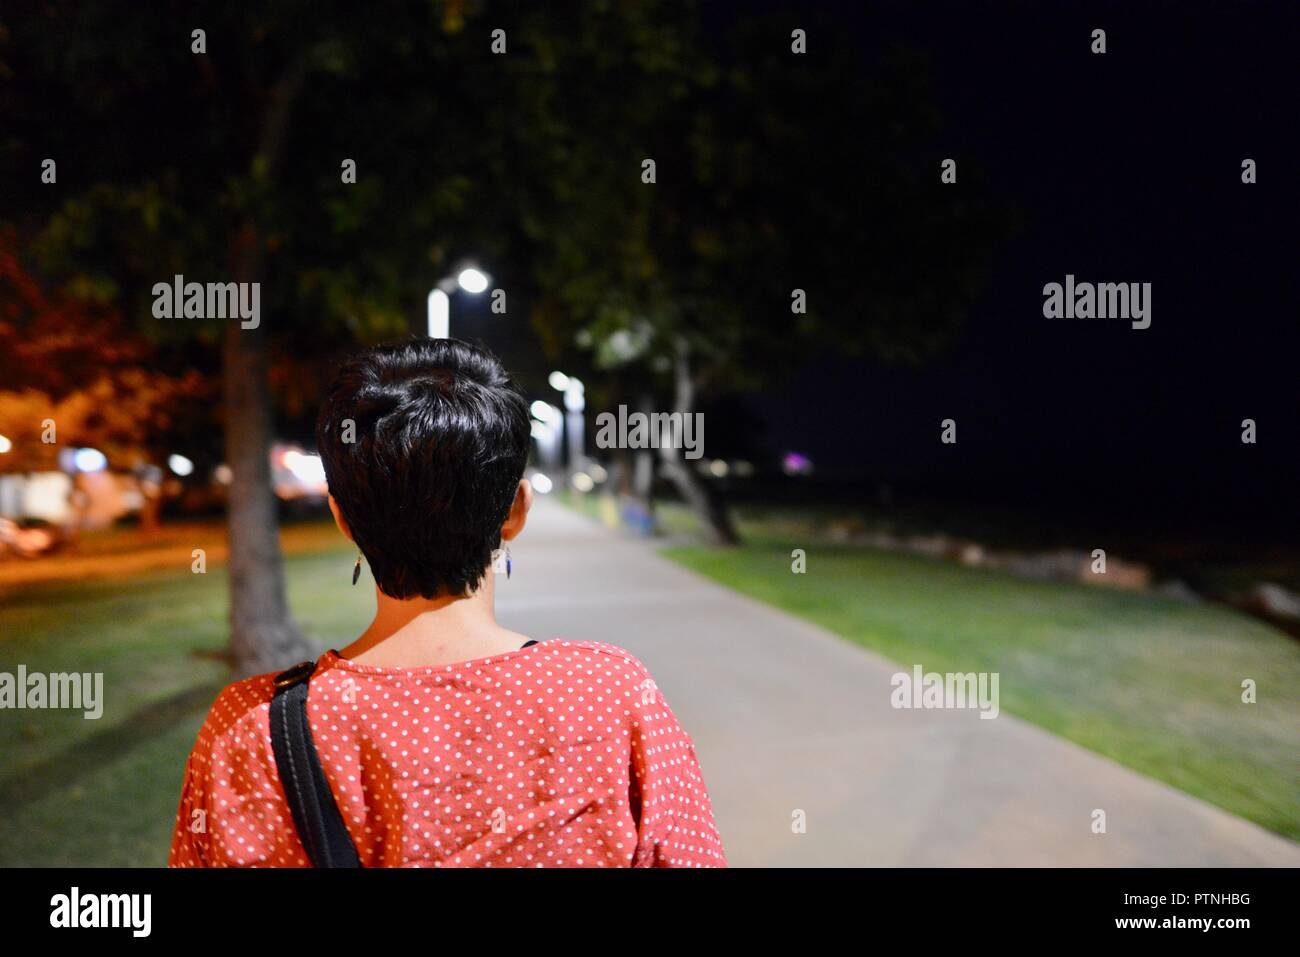 A woman walks alone down a path at night, Townsville, Queensland, Australia Stock Photo